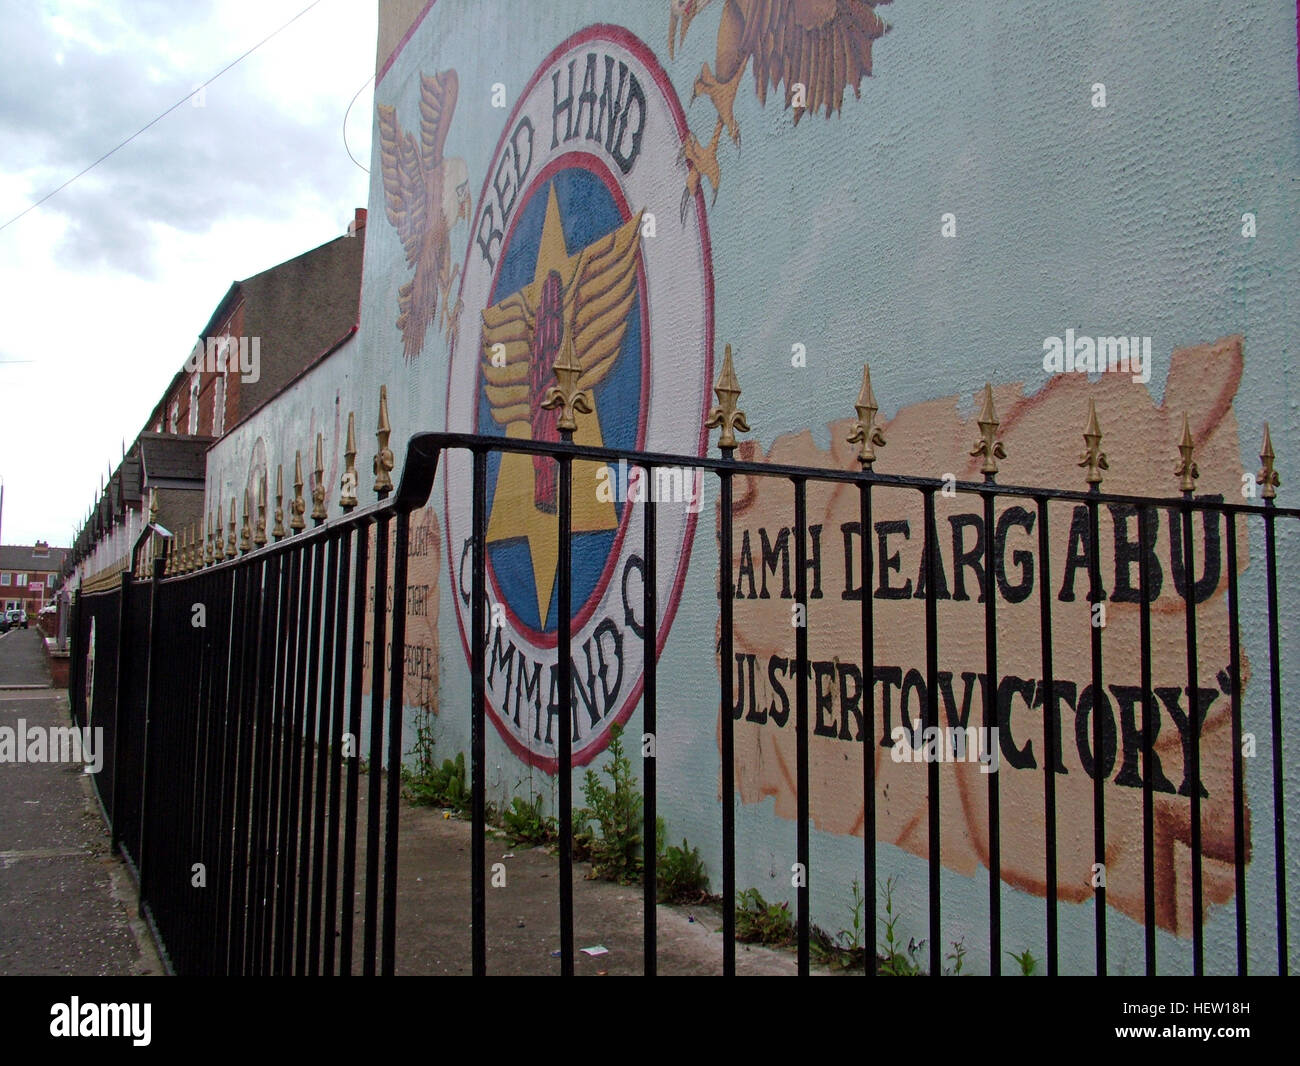 Unionist,British,Shankil,rd,painting,art,artist,martyr,fighter,para,paramilitary,soldier,wall,gable,end,gable end,community,protestant,Shankill Road Mural,West,West Belfast,NI,Northern Ireland,Red Hand Commando,rail,railings,gableend,GoTonySmith,@HotpixUK,Tony,Smith,UK,GB,Great,Britain,United,Kingdom,Irish,British,Ireland,problem,with,problem with,issue with,NI,Northern,Northern Ireland,Belfast,City,Centre,Art,Artists,the,troubles,The Troubles,Good Friday Agreement,Peace,honour,painting,wall,walls,tribute,unionism,Fight,Justice,West,Beal,feirste,martyrs,social,tour,tourism,tourists,urban,six,counties,6,backdrop,county,Antrim,DUP,democratic Unionist,red hand,of Ulster,Red Hand Of Ulster,Shankill,Rd,road,Shankill Road,Buy Pictures of,Buy Images Of,Images of,Stock Images,Tony Smith,United Kingdom,Great Britain,British Isles